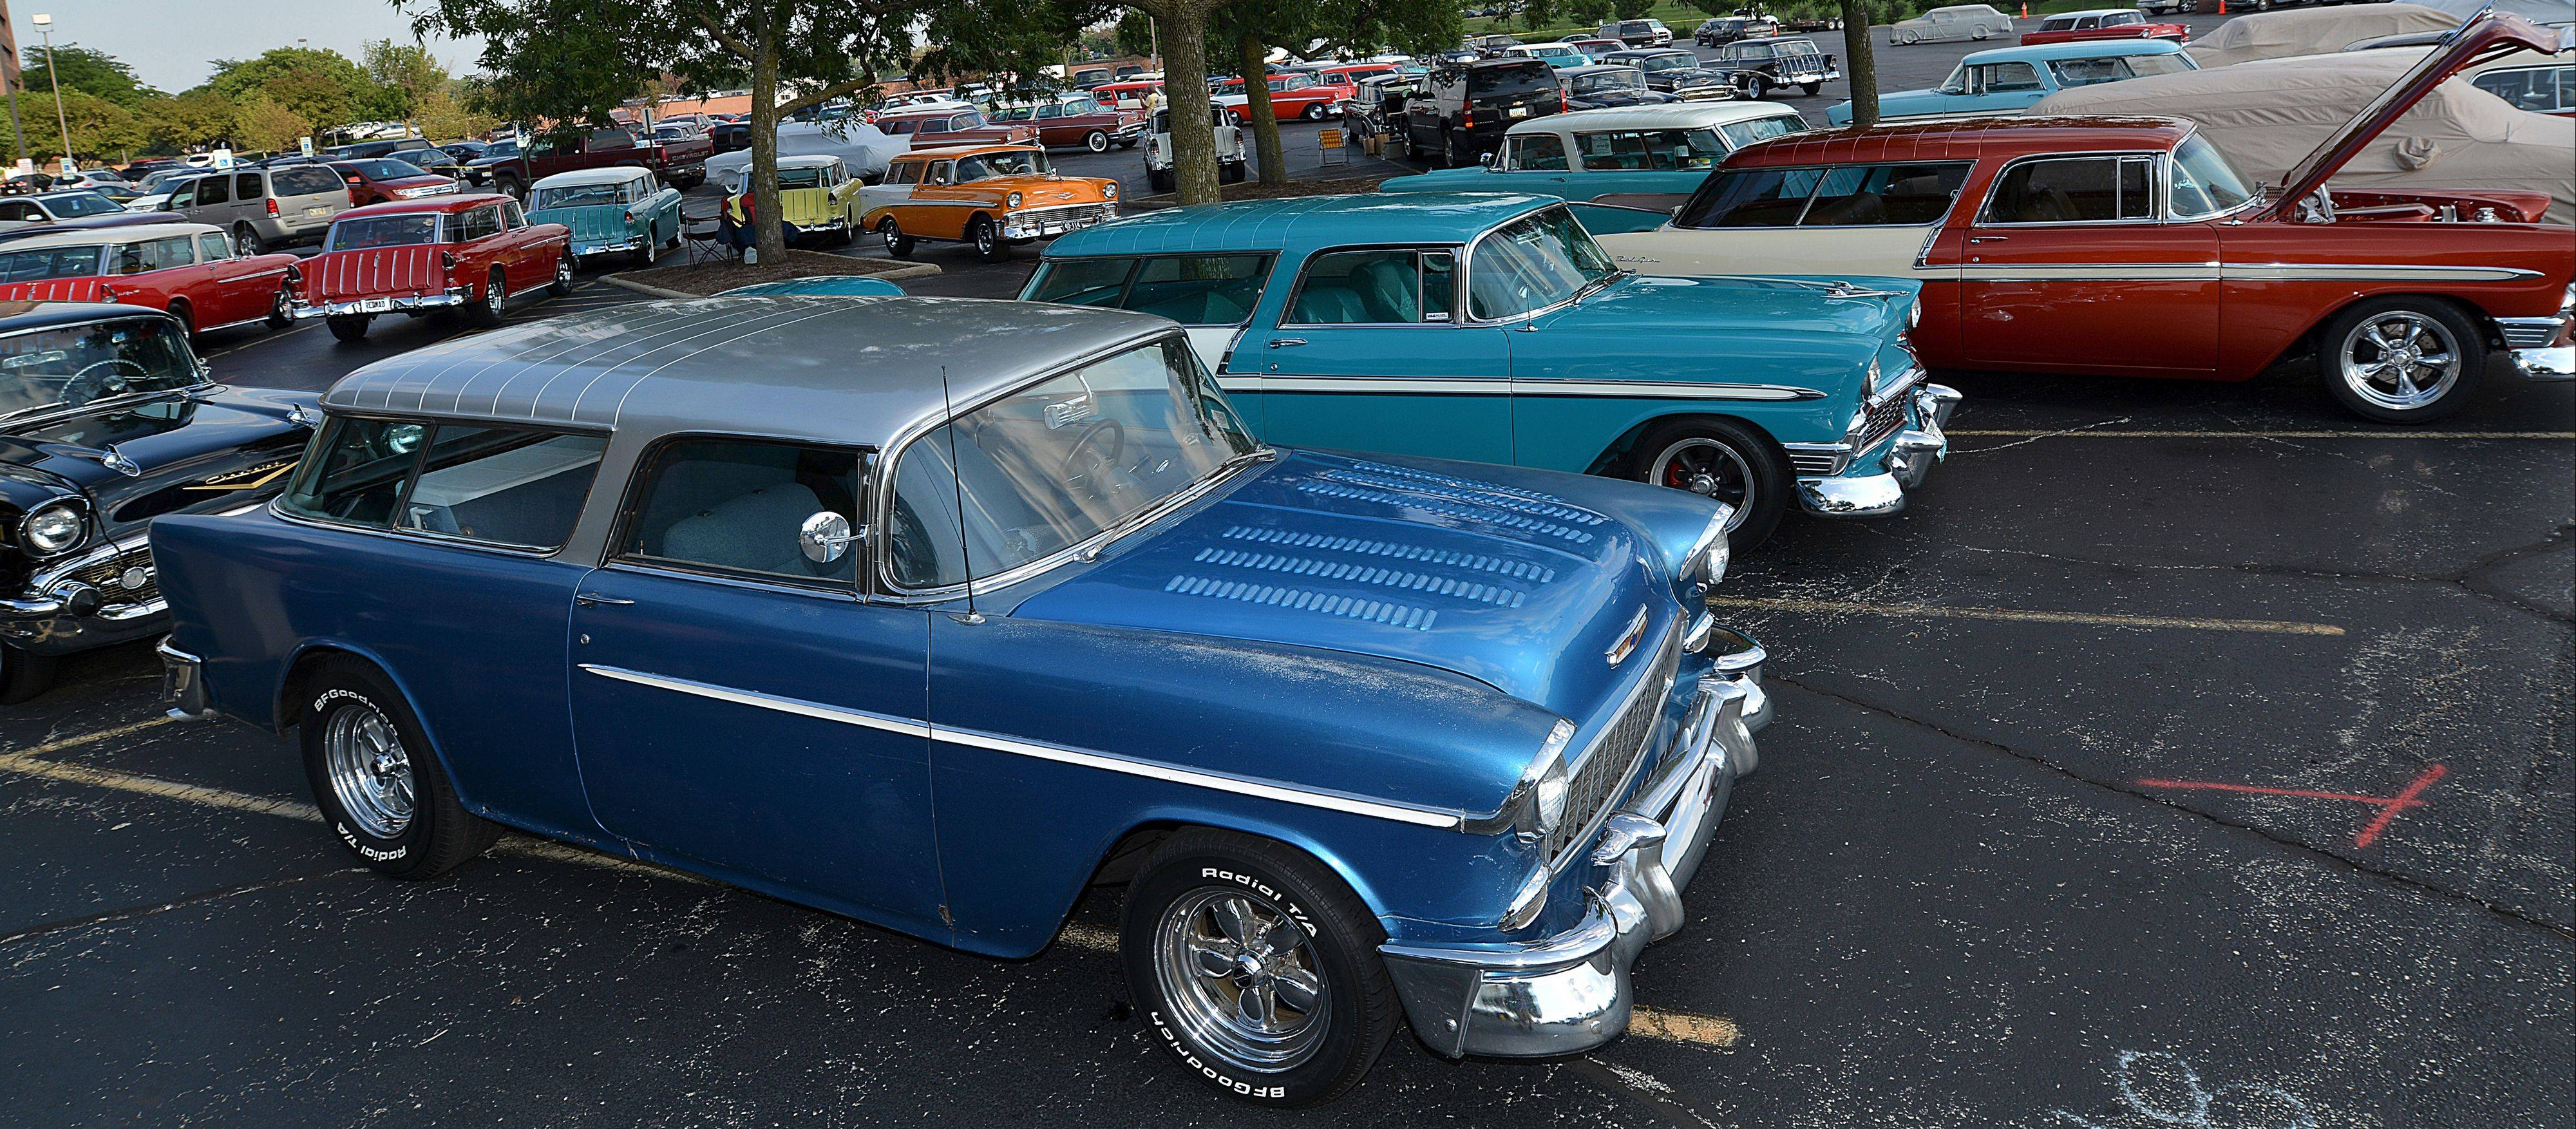 More than 100 enthusiasts parked their rides at the Chevrolet Nomad Association's 25th annual convention in Itasca last week.